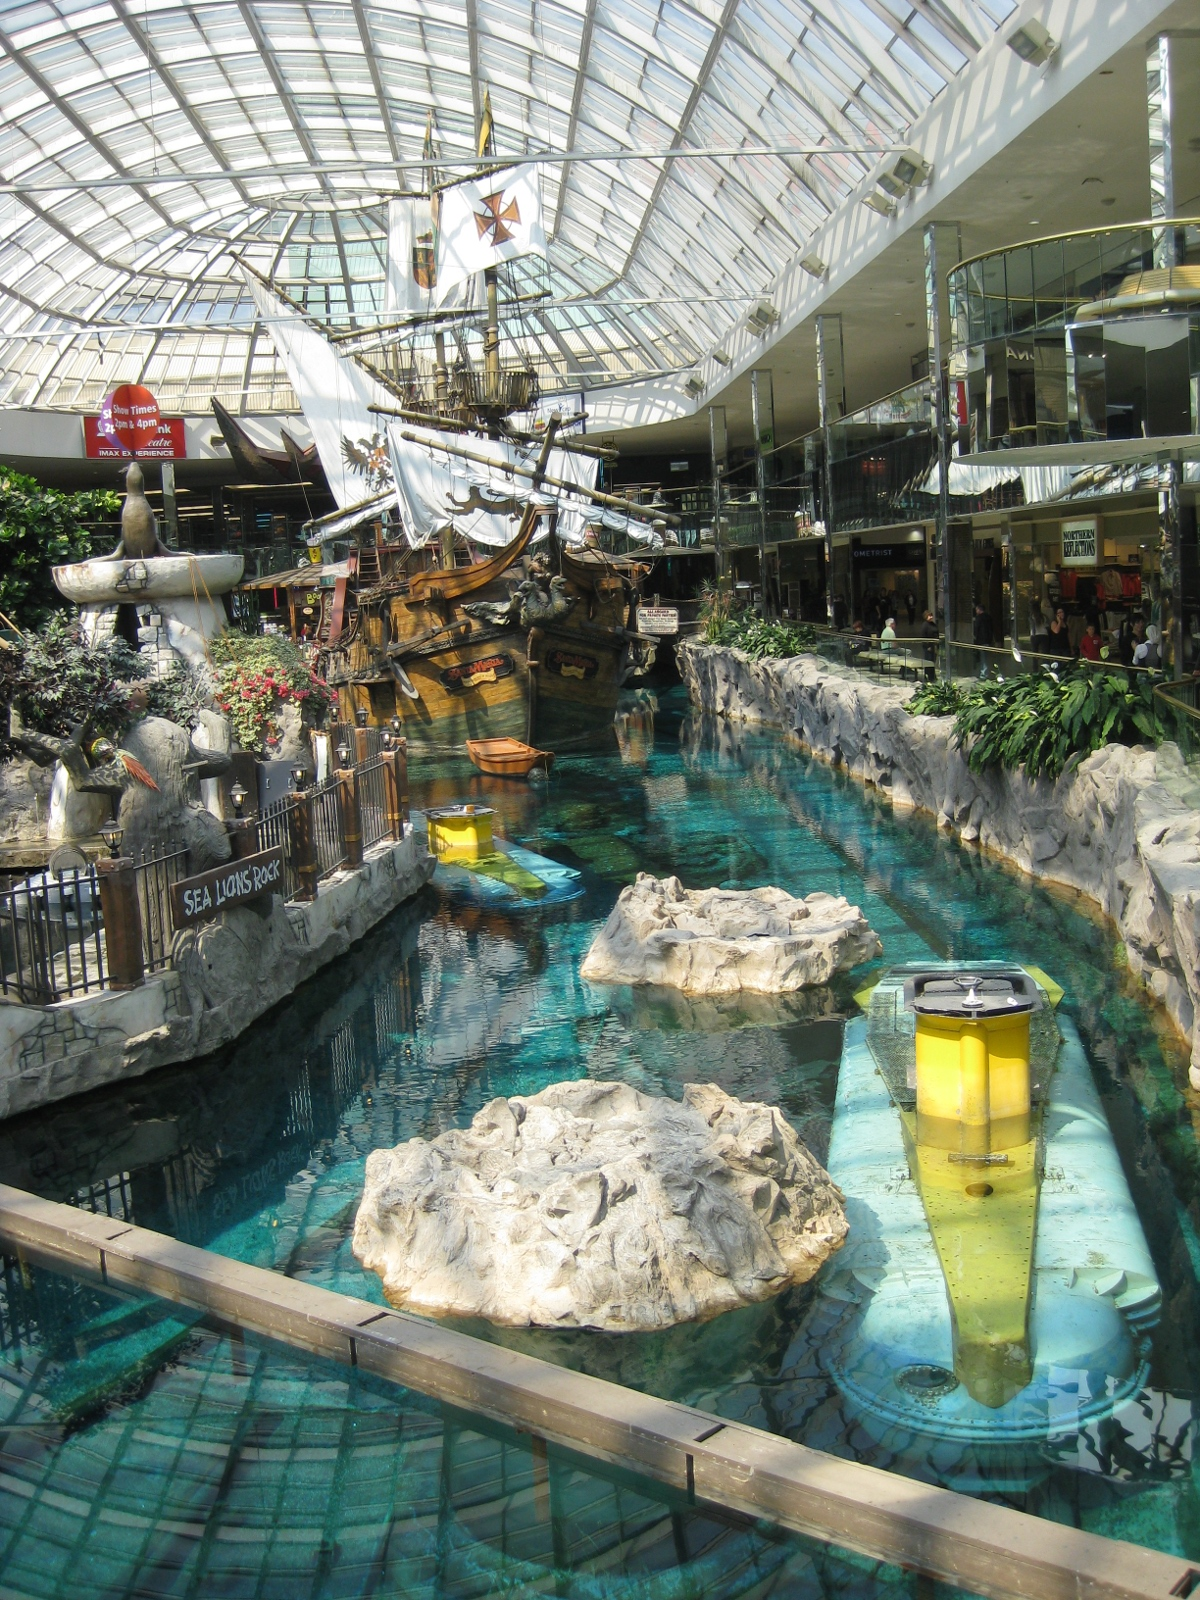 Fish aquarium edmonton - Apparently They Do Parties For Kids And Things On The Giant Pirate Ship That Watery Area Is Also Home To The Sea Lions And A Small Underground Aquarium So